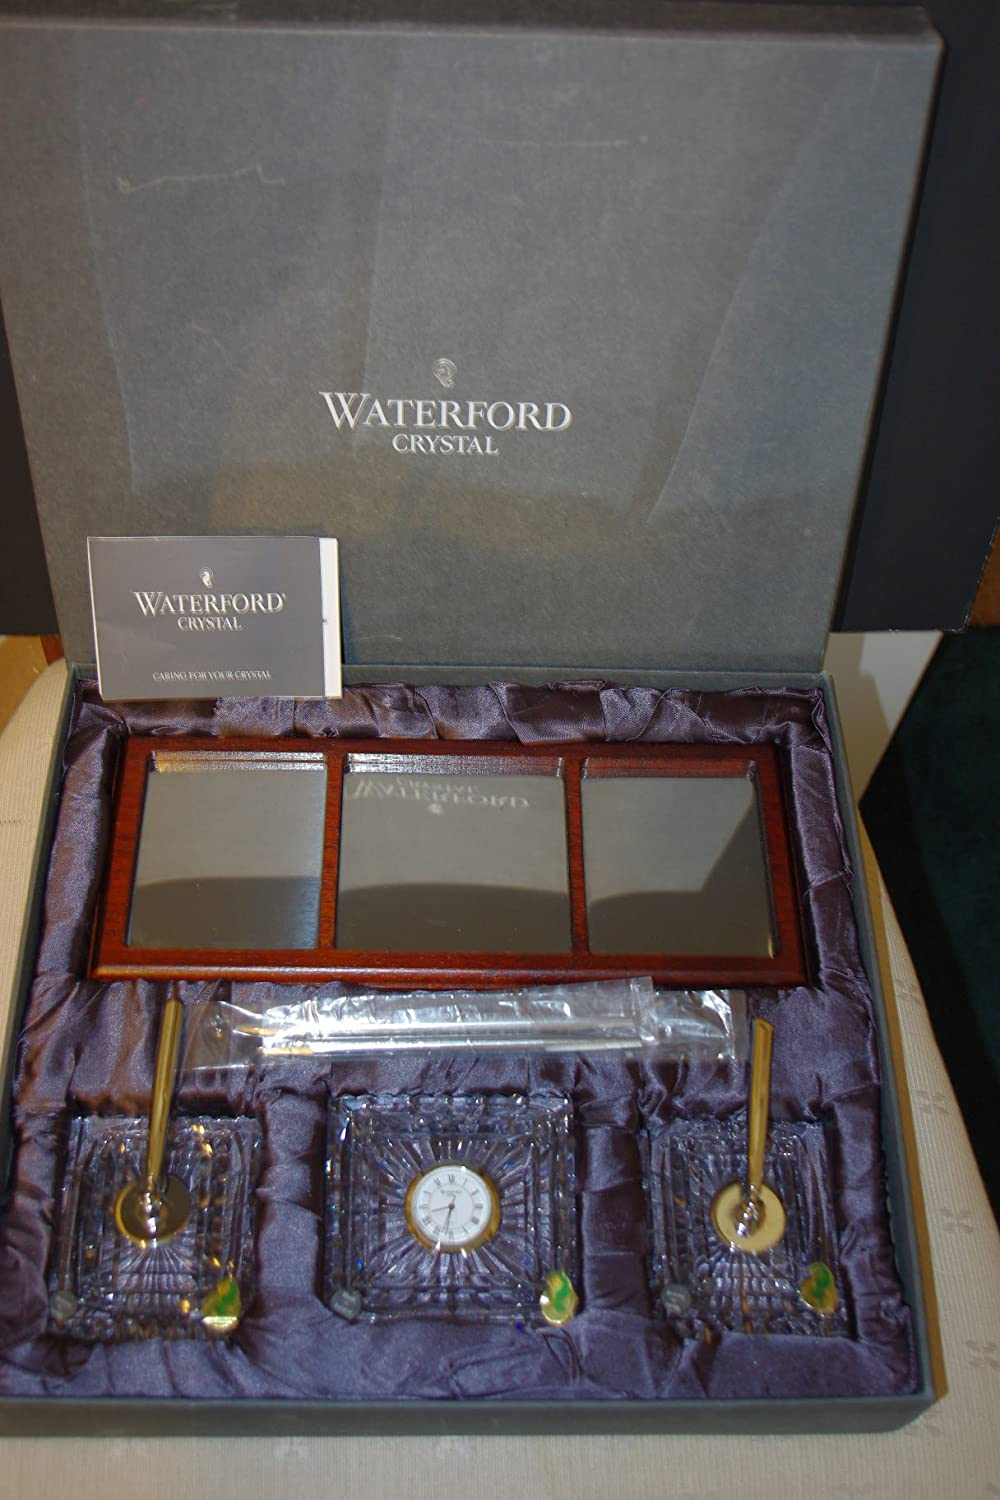 Amazon.com : Waterford Crystal Executive Desk Set Clock Pens ...